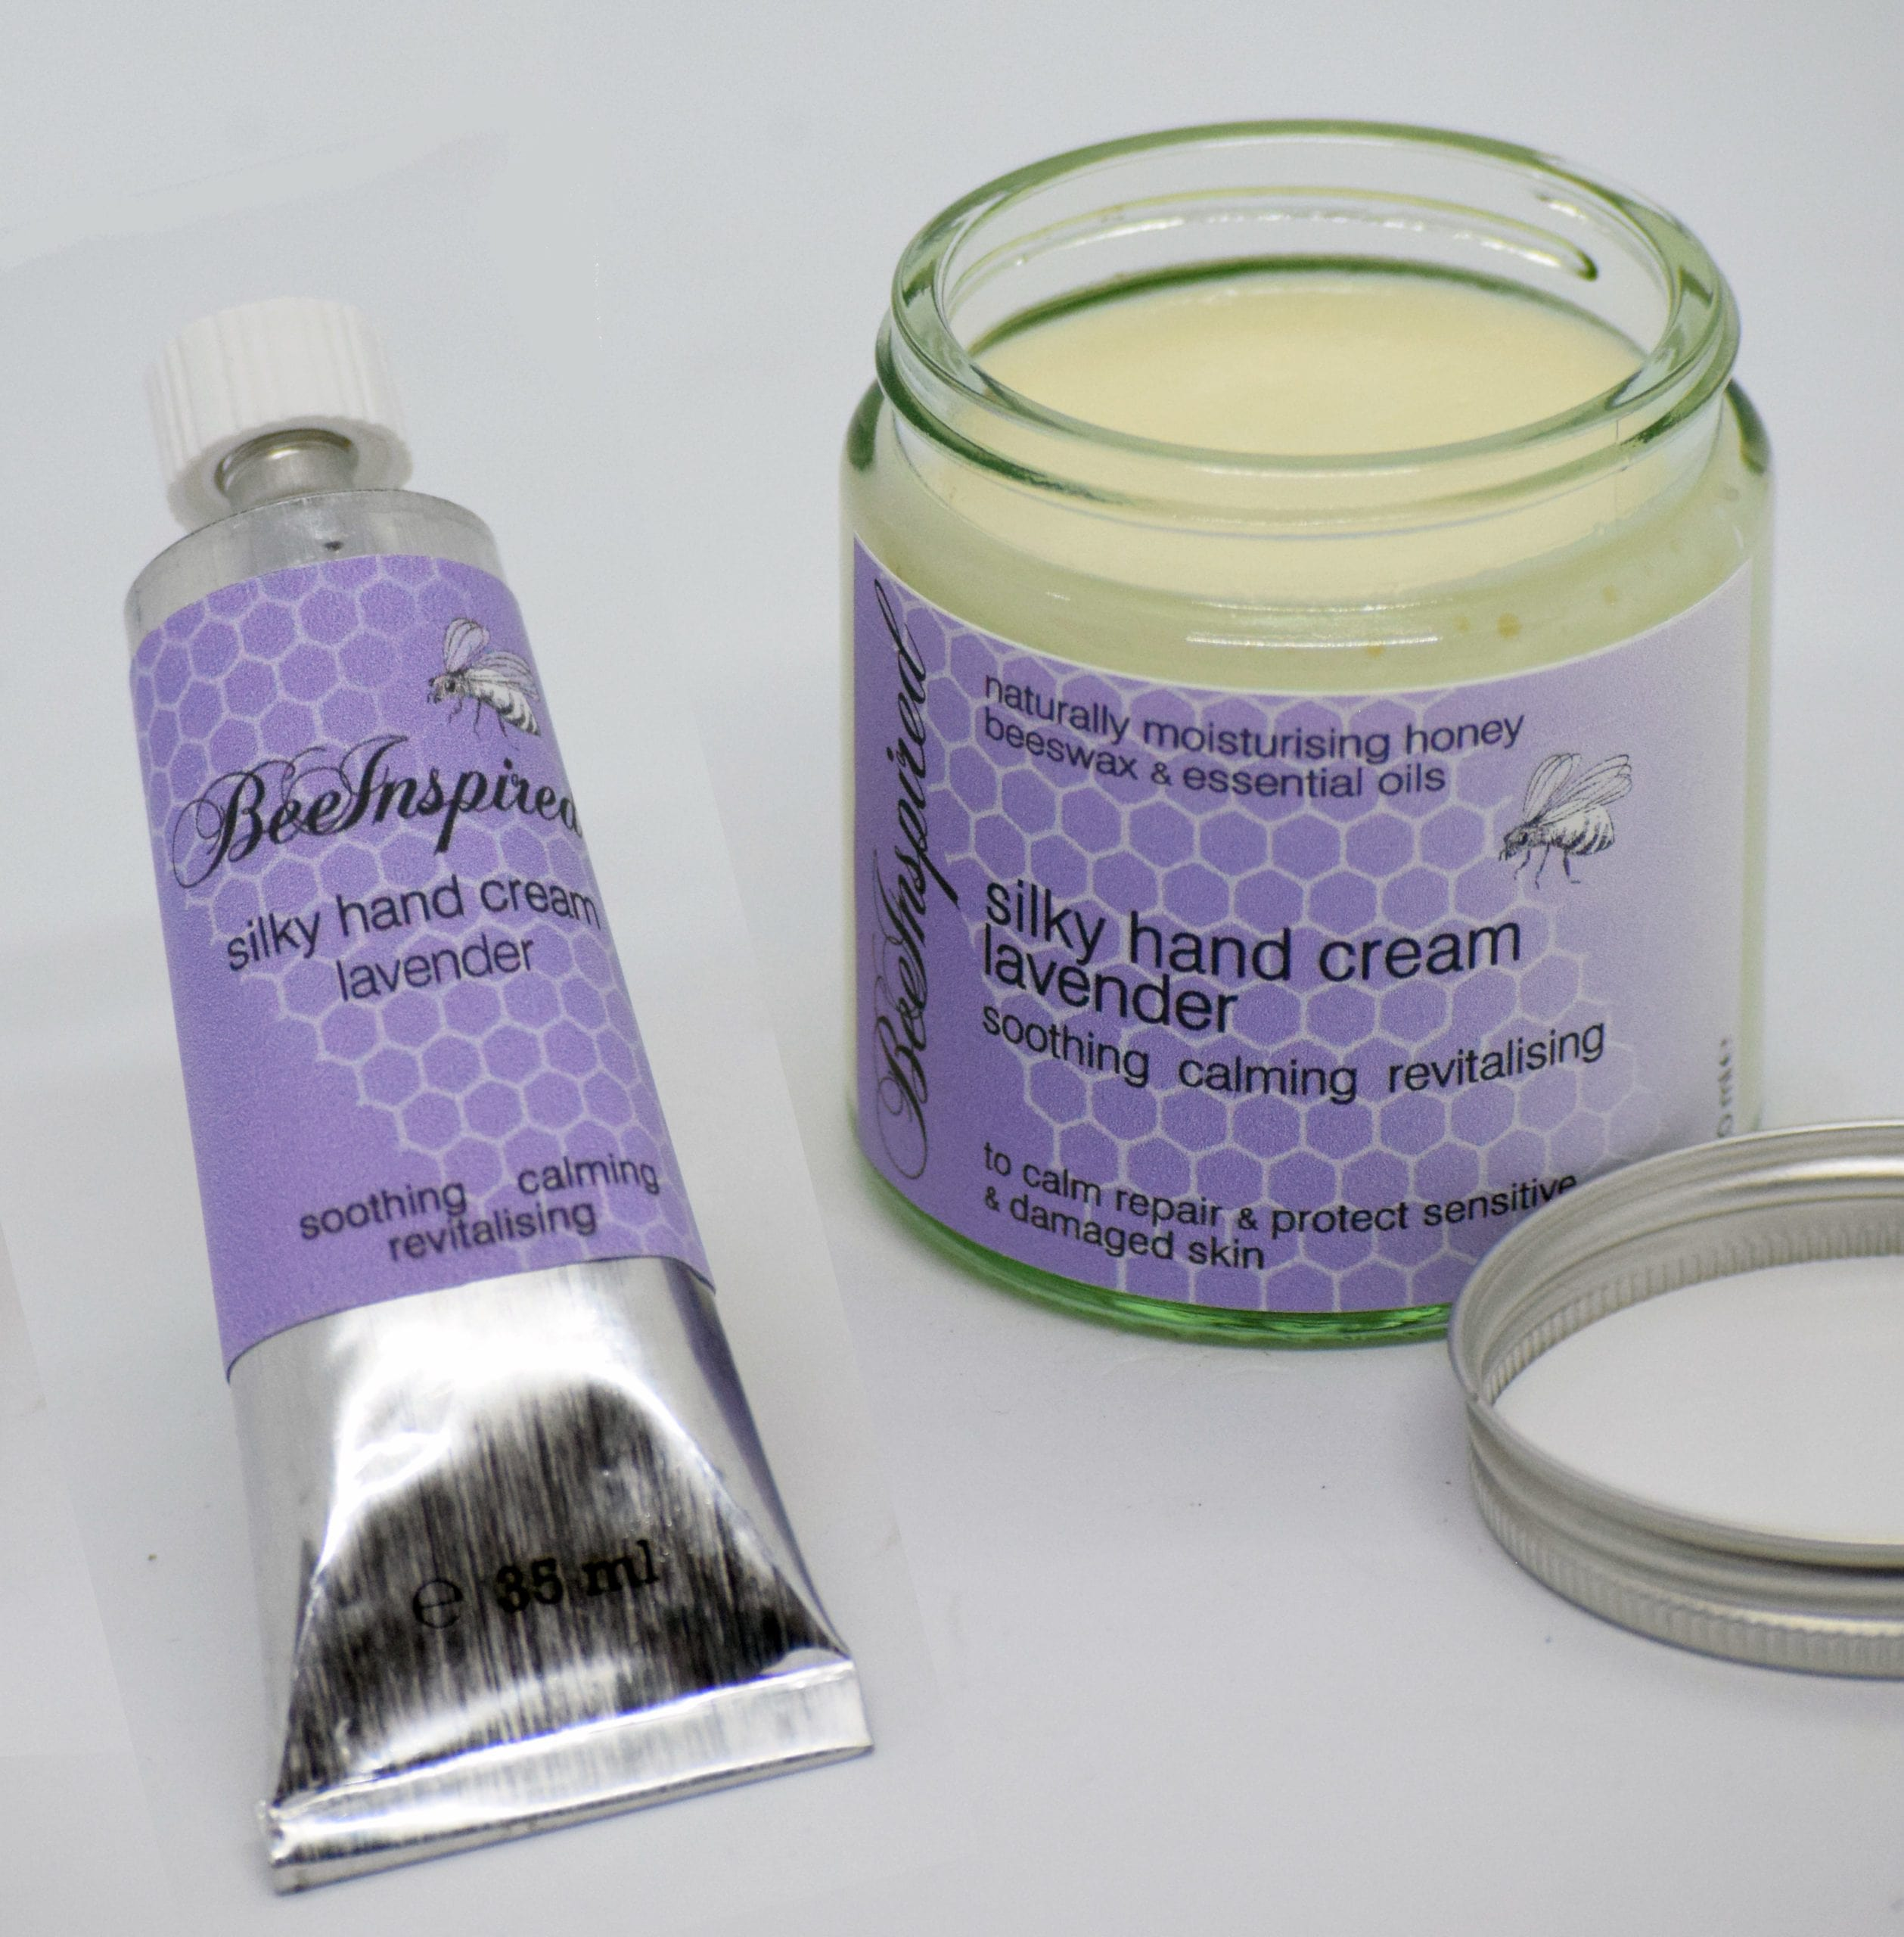 Silky Hand Cream - Lavender - Soothing Calming and Revitalising